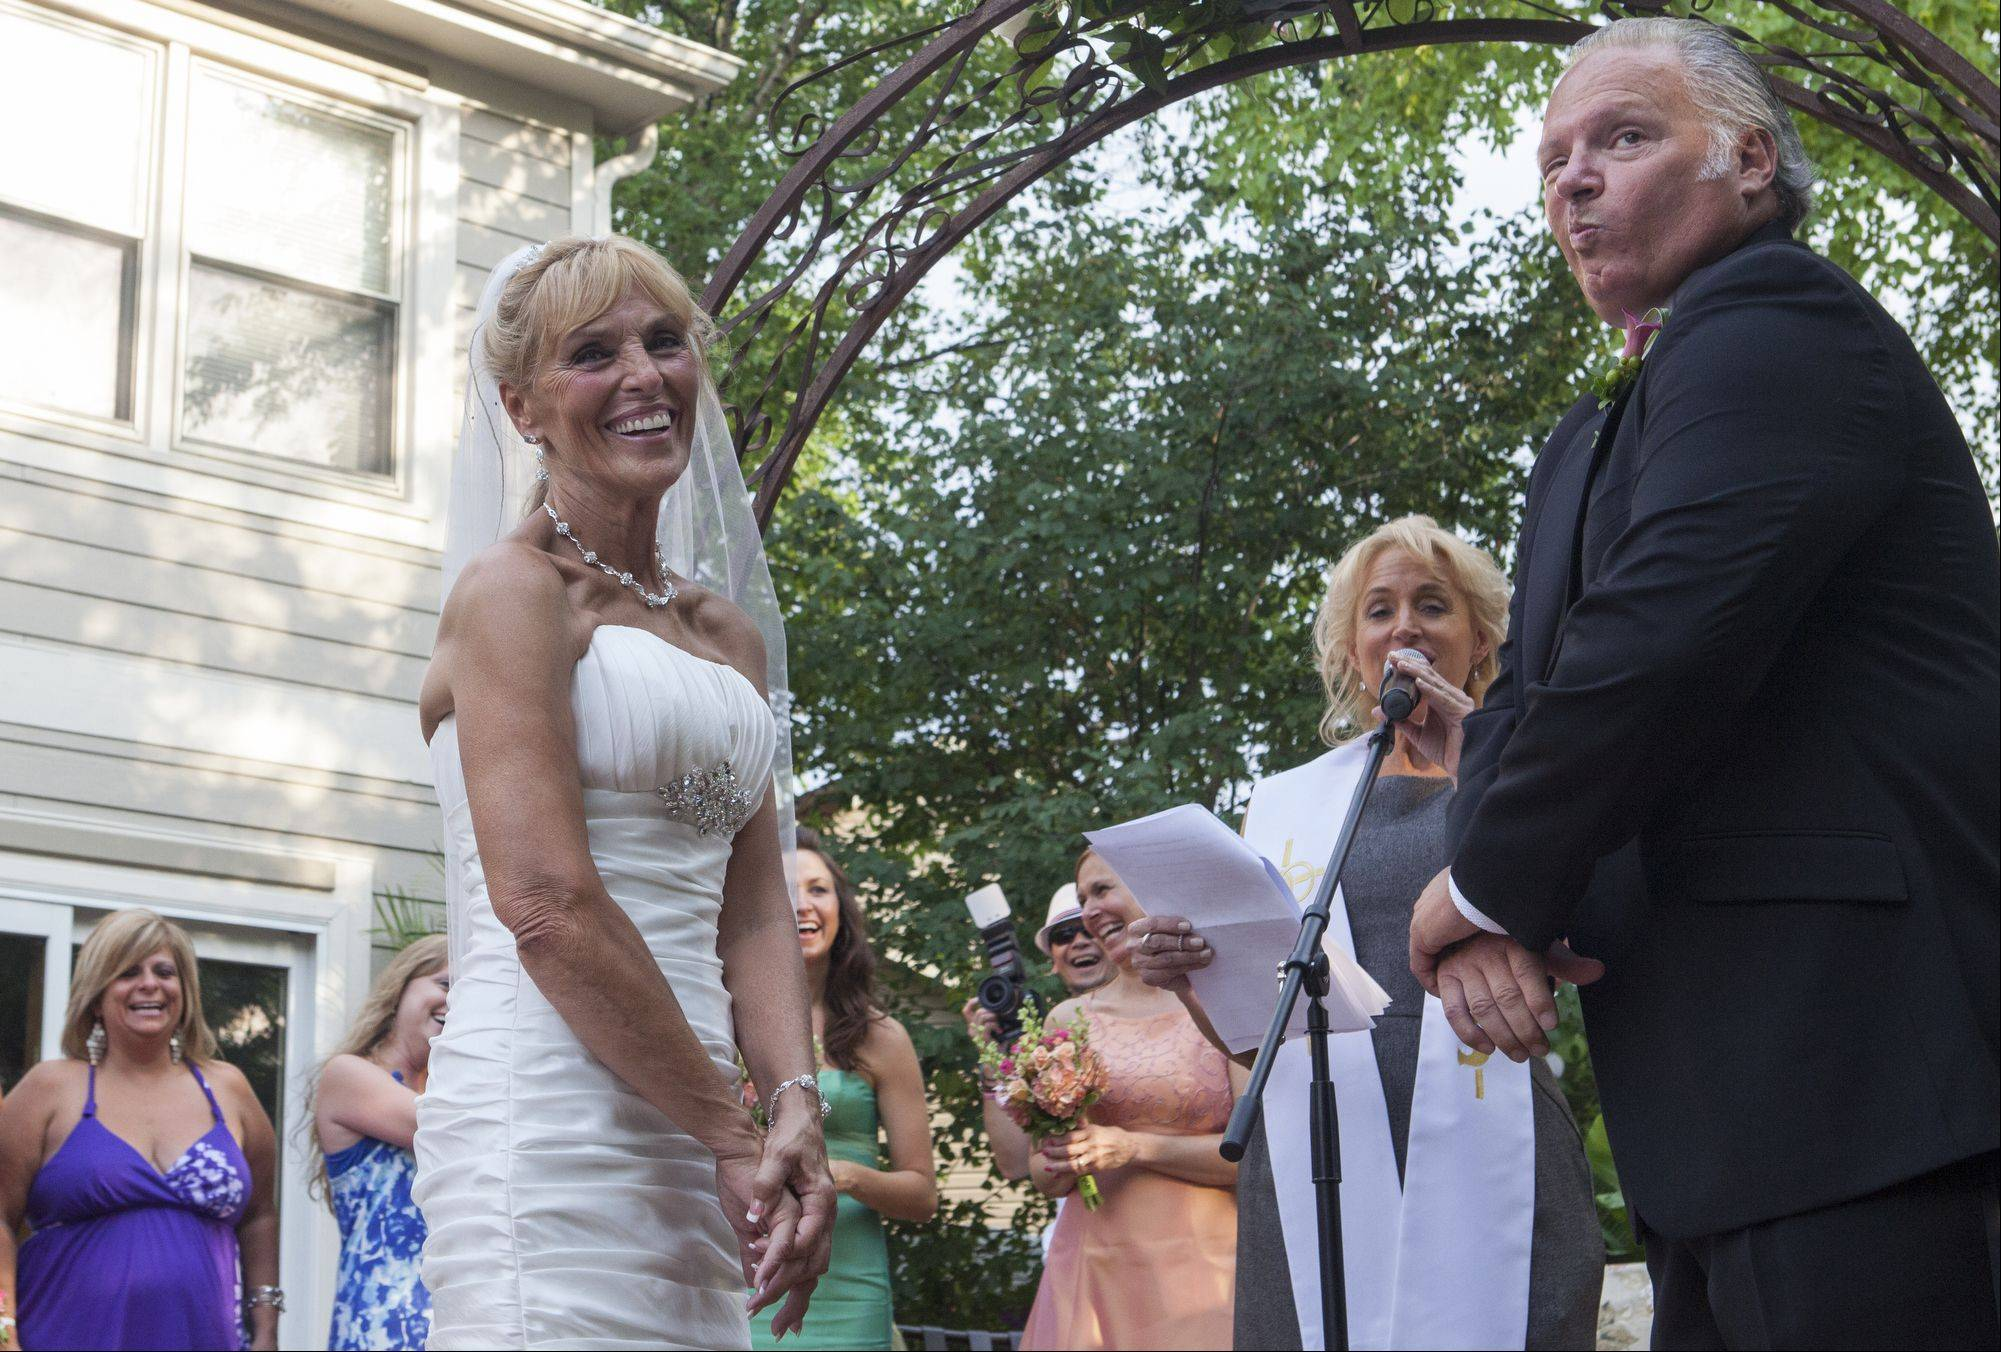 Mike Conjura makes a face to the crowd after Libby Watkins made a funny remark during their vows.